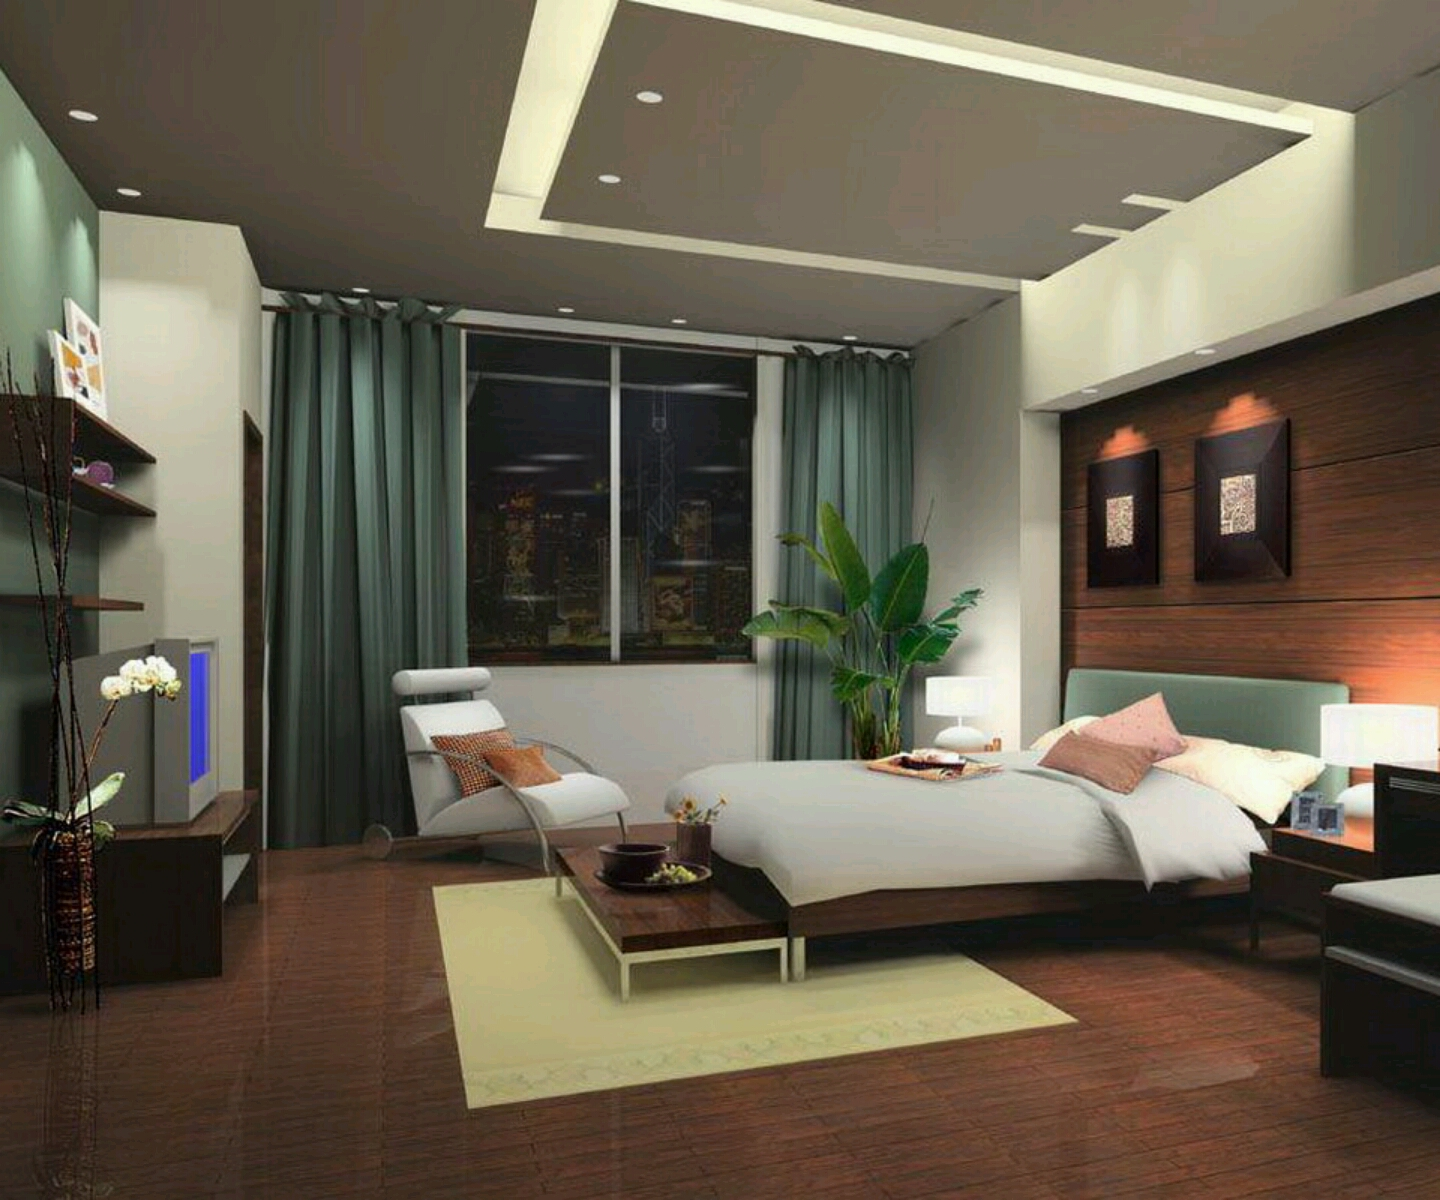 New home designs latest modern bedrooms designs best ideas for Bedroom ideas new